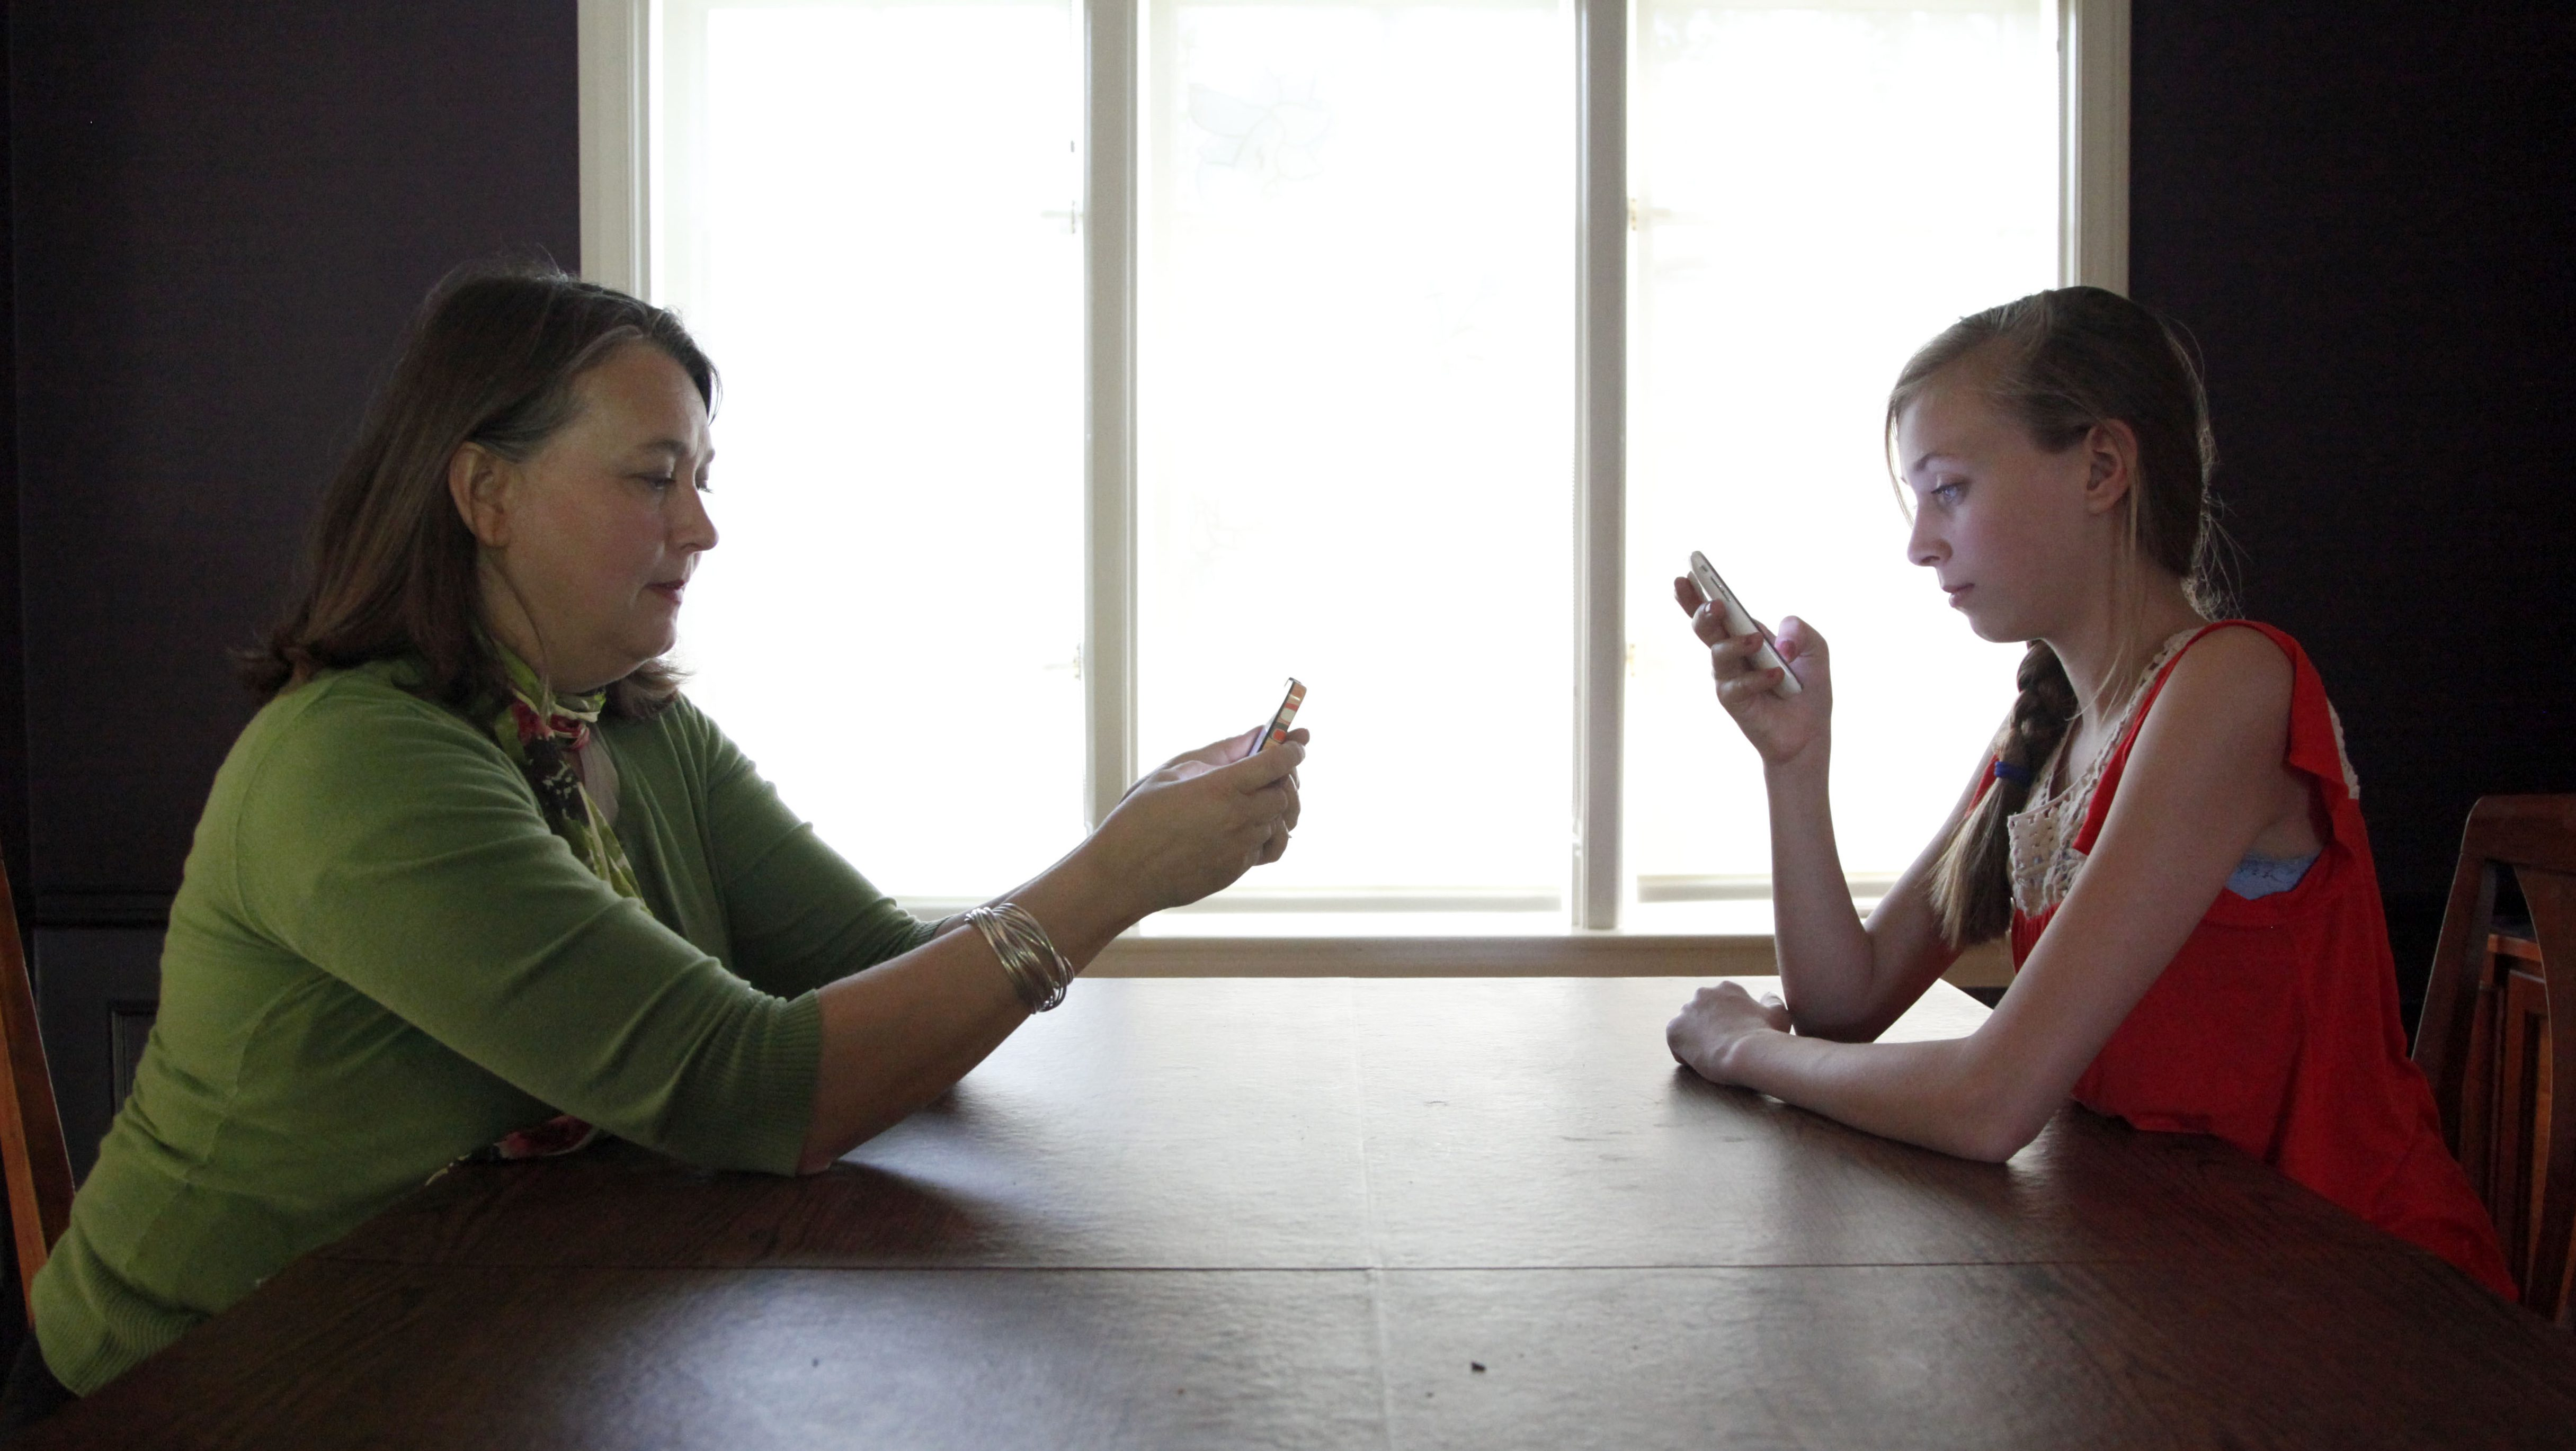 FILE -In this May 24, 2012 file photo, Anna Schiferl, right, and her mother, Joanna, pose for a photograph holding their cell phones in the dining room of their LaGrange, Ill. home. Statistics from the Pew Internet & American Life Project show that, these days, many people with cell phones prefer texting over a phone call. It's not always young people, though the data indicates that the younger you are, the more likely you are to prefer texting. But many experts say the most successful communicators will, of course, have the ability to do both talk or text, and know the most appropriate times to use those skills. (AP Photo/Charles Rex Arbogast, File)